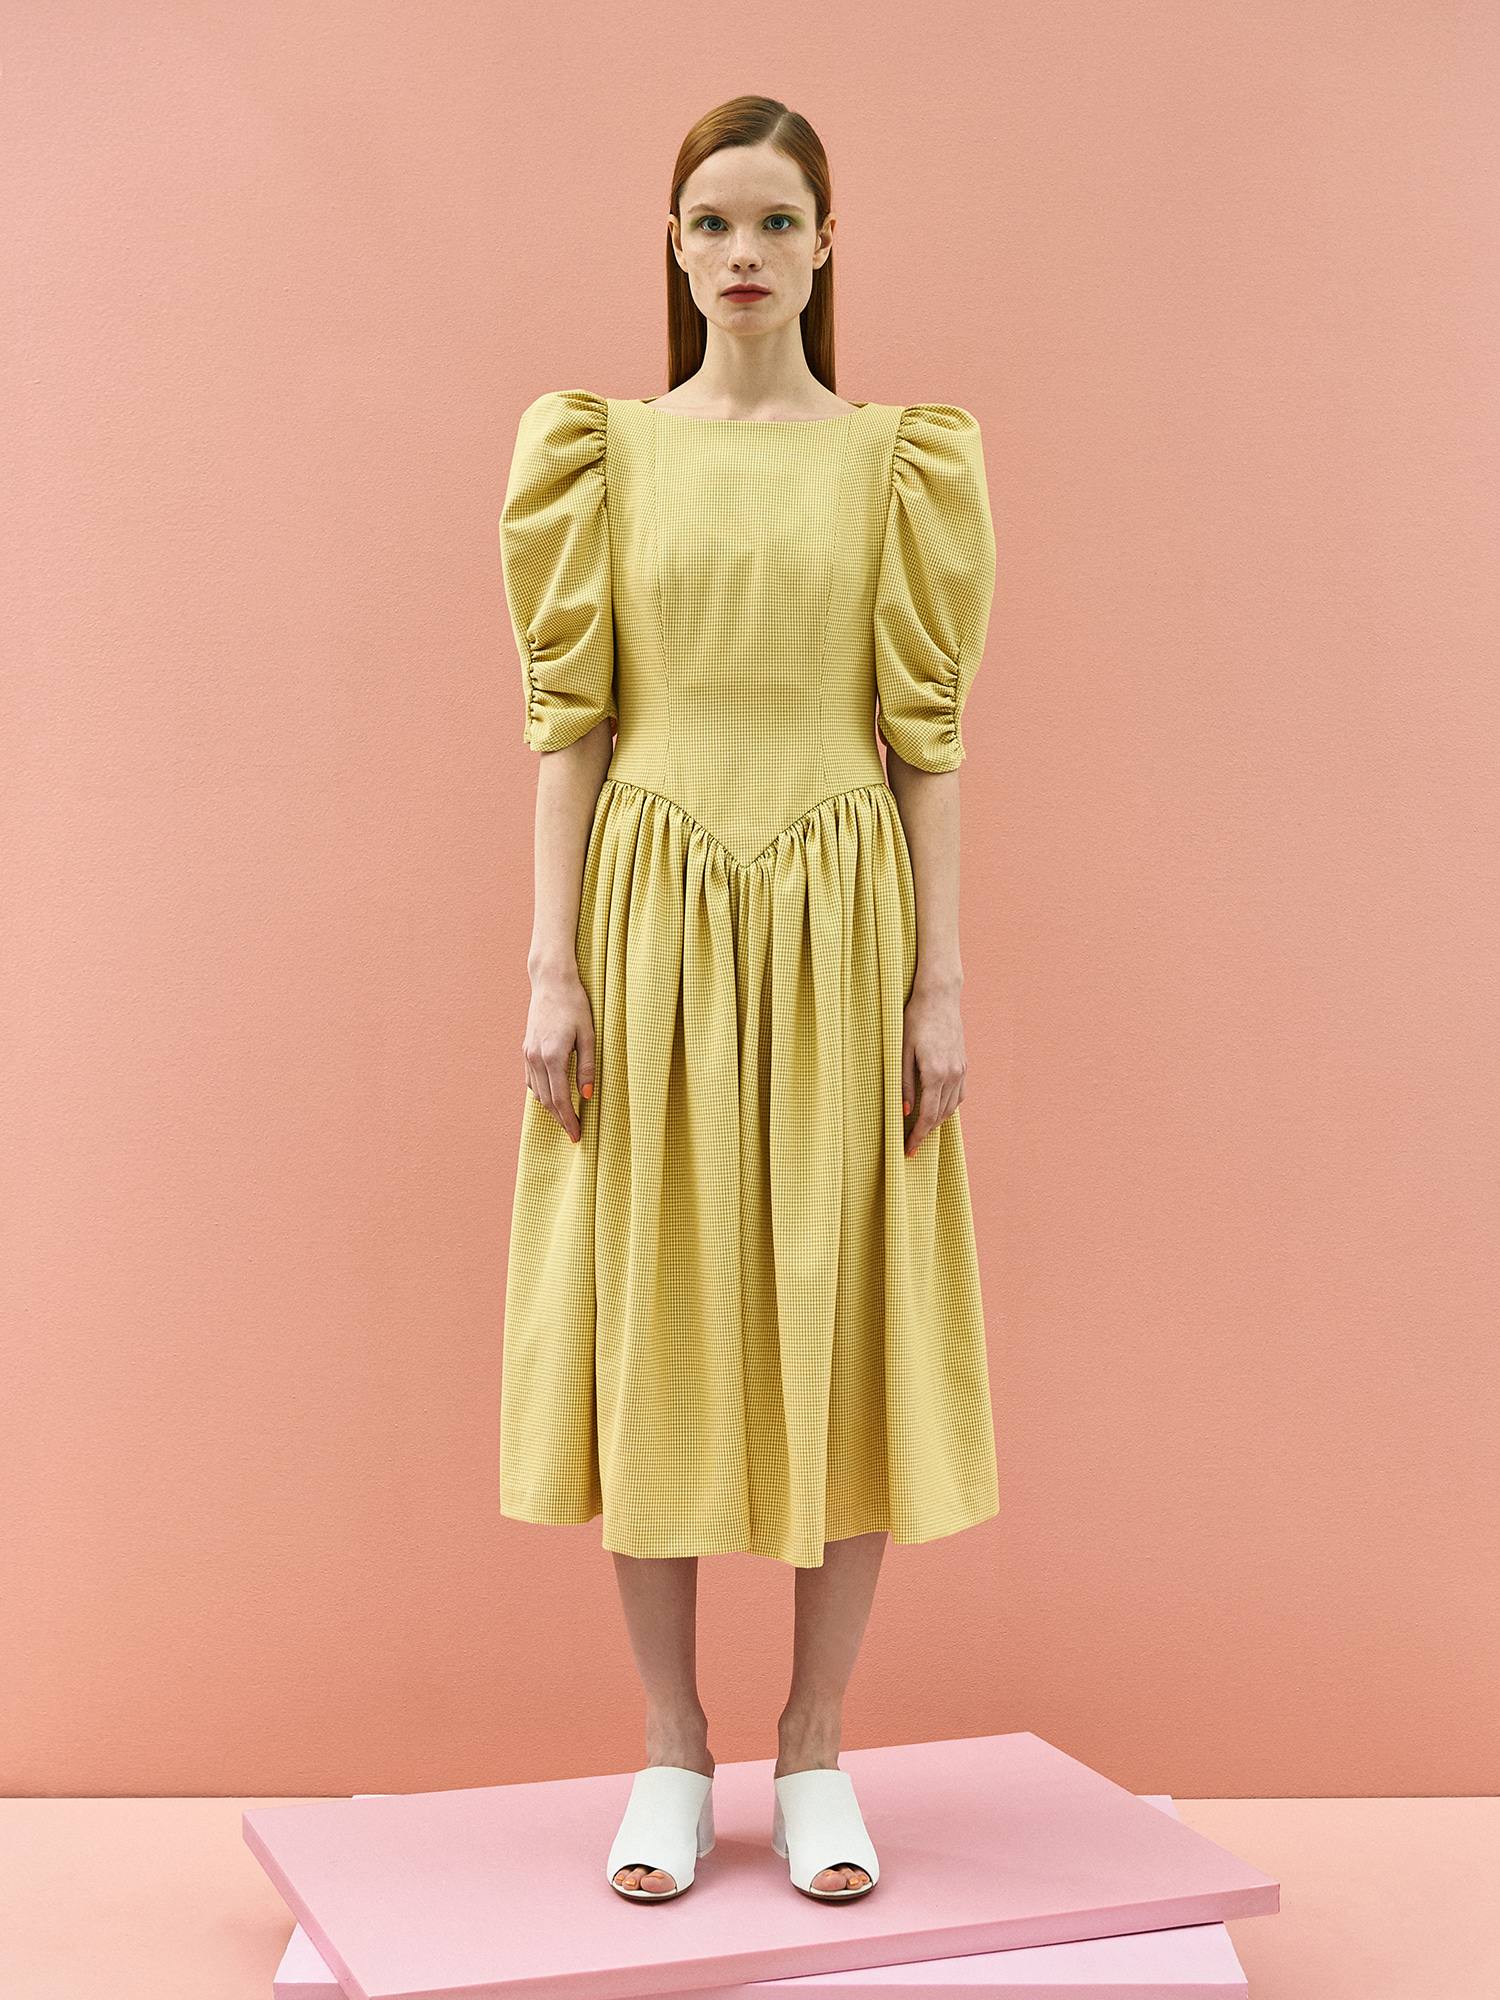 [미드세일 30%할인]Ann Shirring Check Dress in Yellow